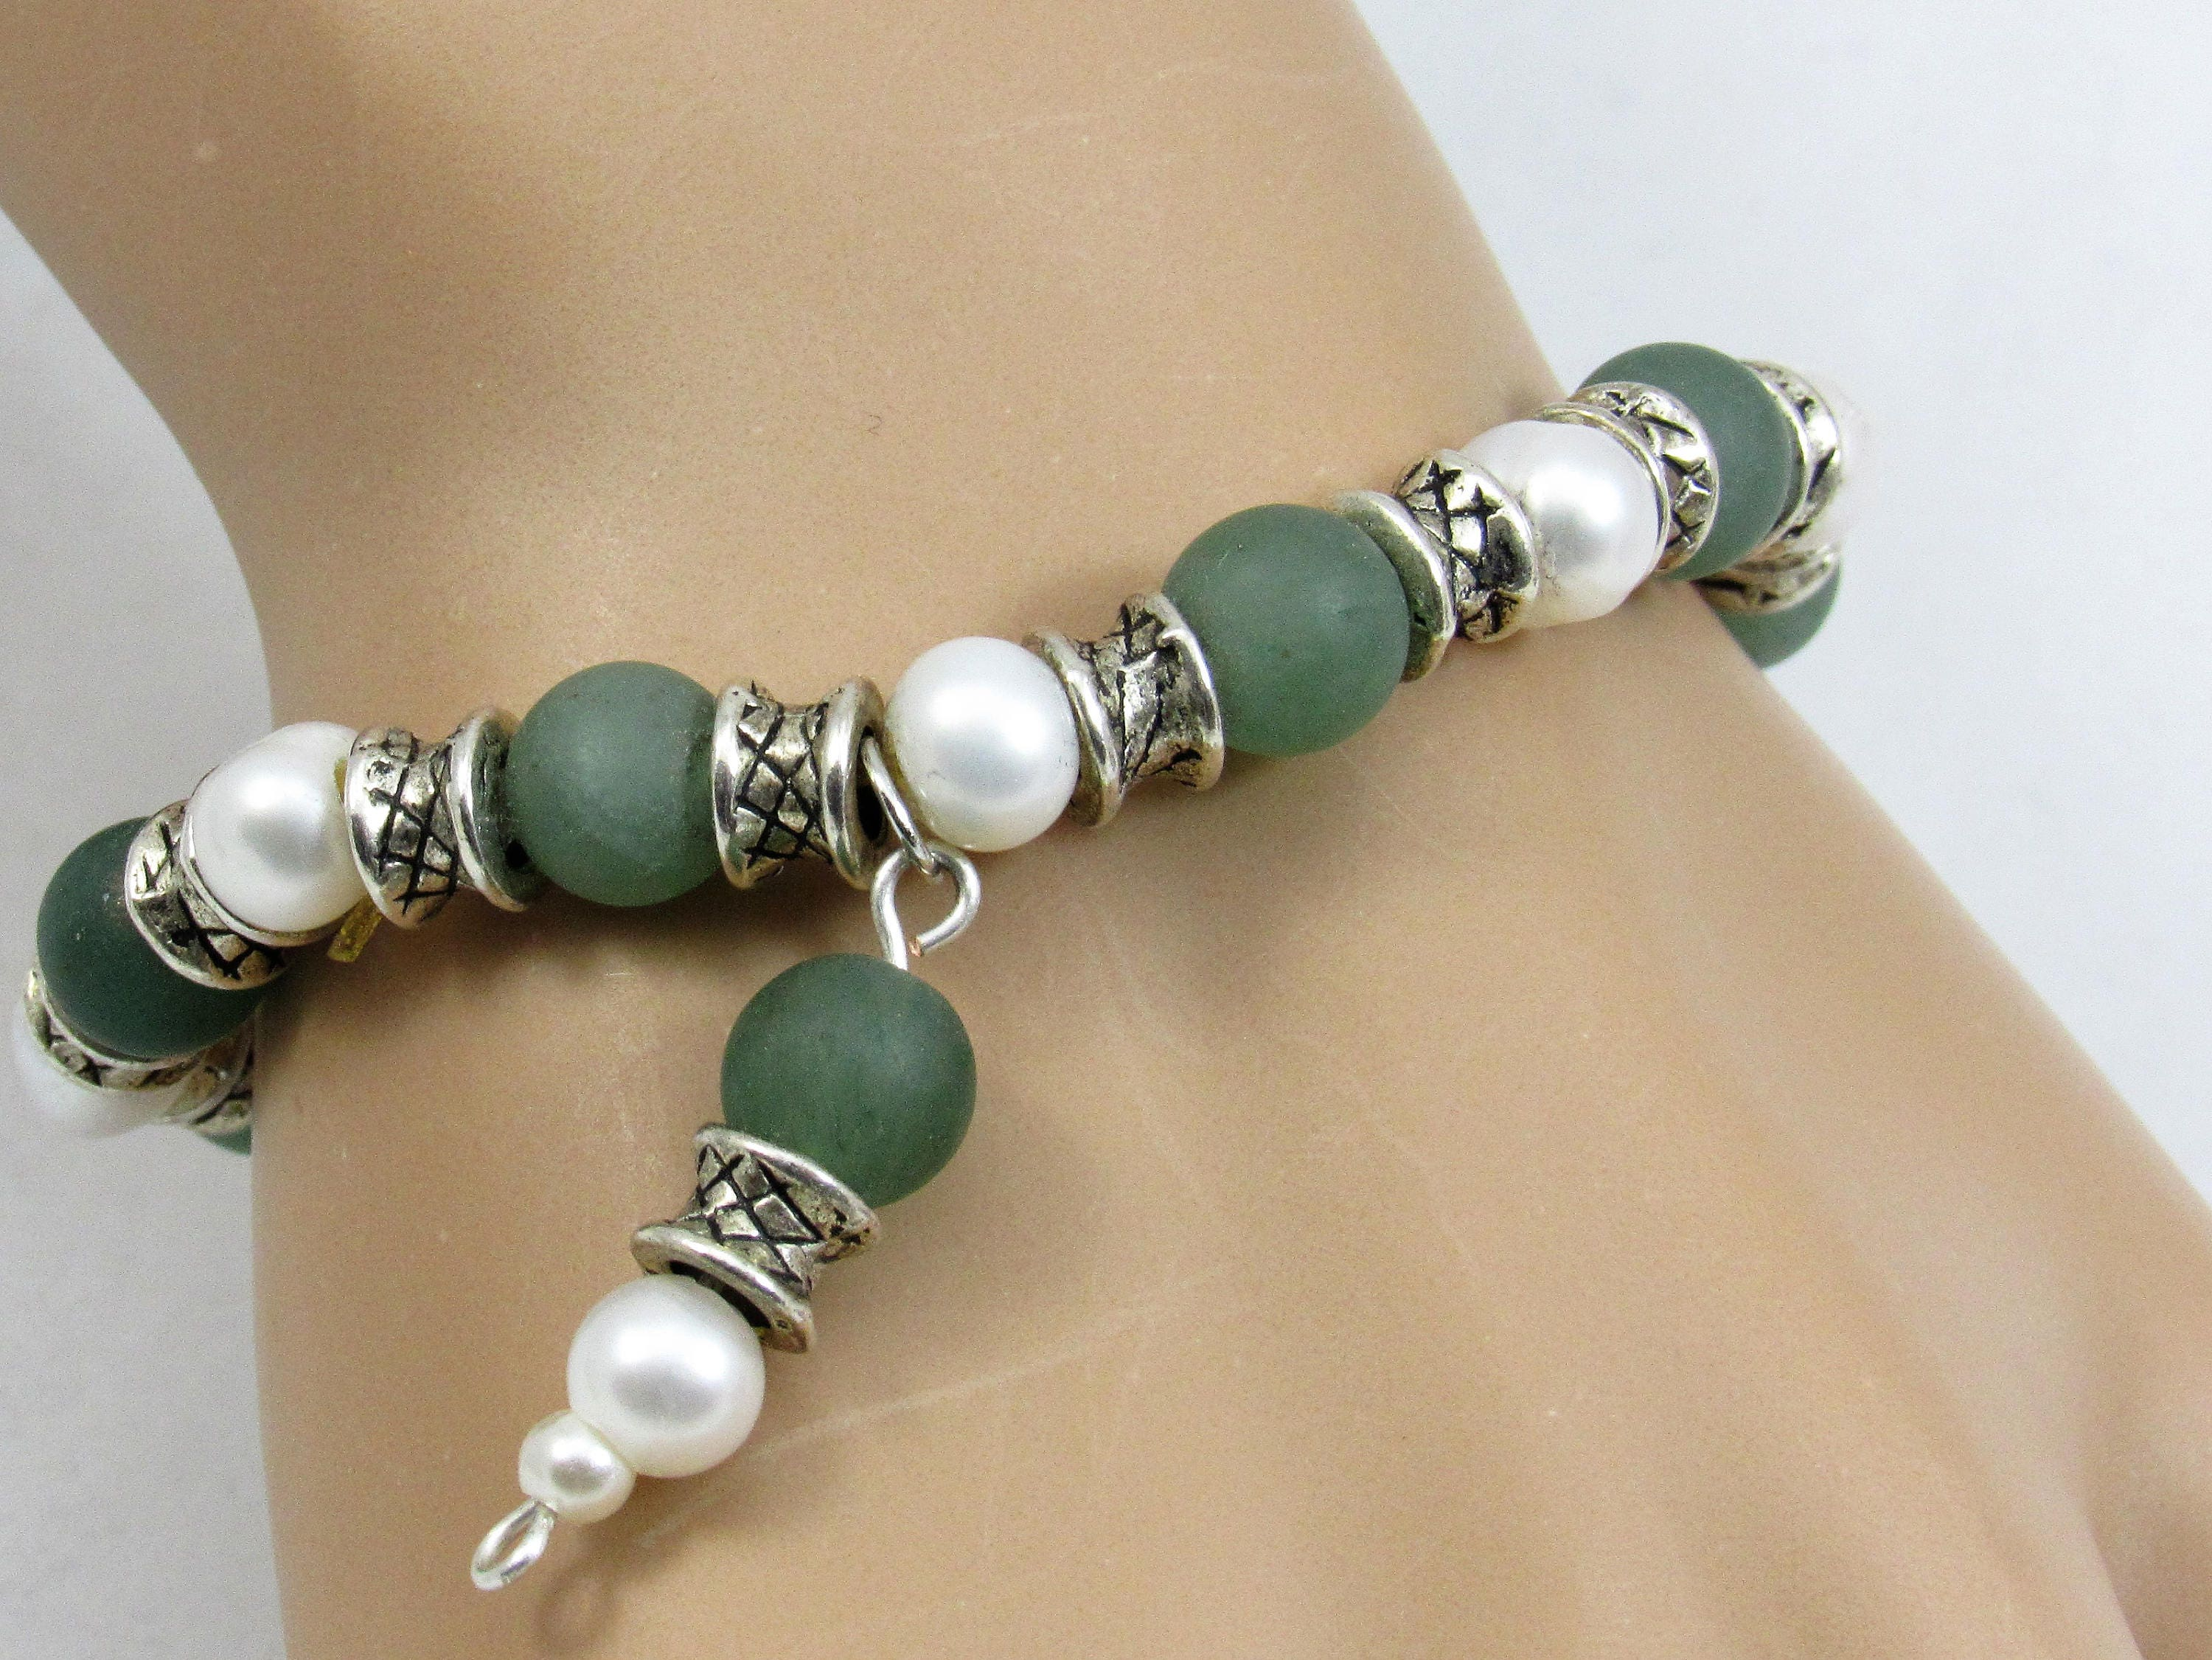 Frosted Green Aventurine & Freshwater Pearl Beaded Stretch Bracelet,  Antique Silverplated Spacers And Charm, Pearls, White And Light Green